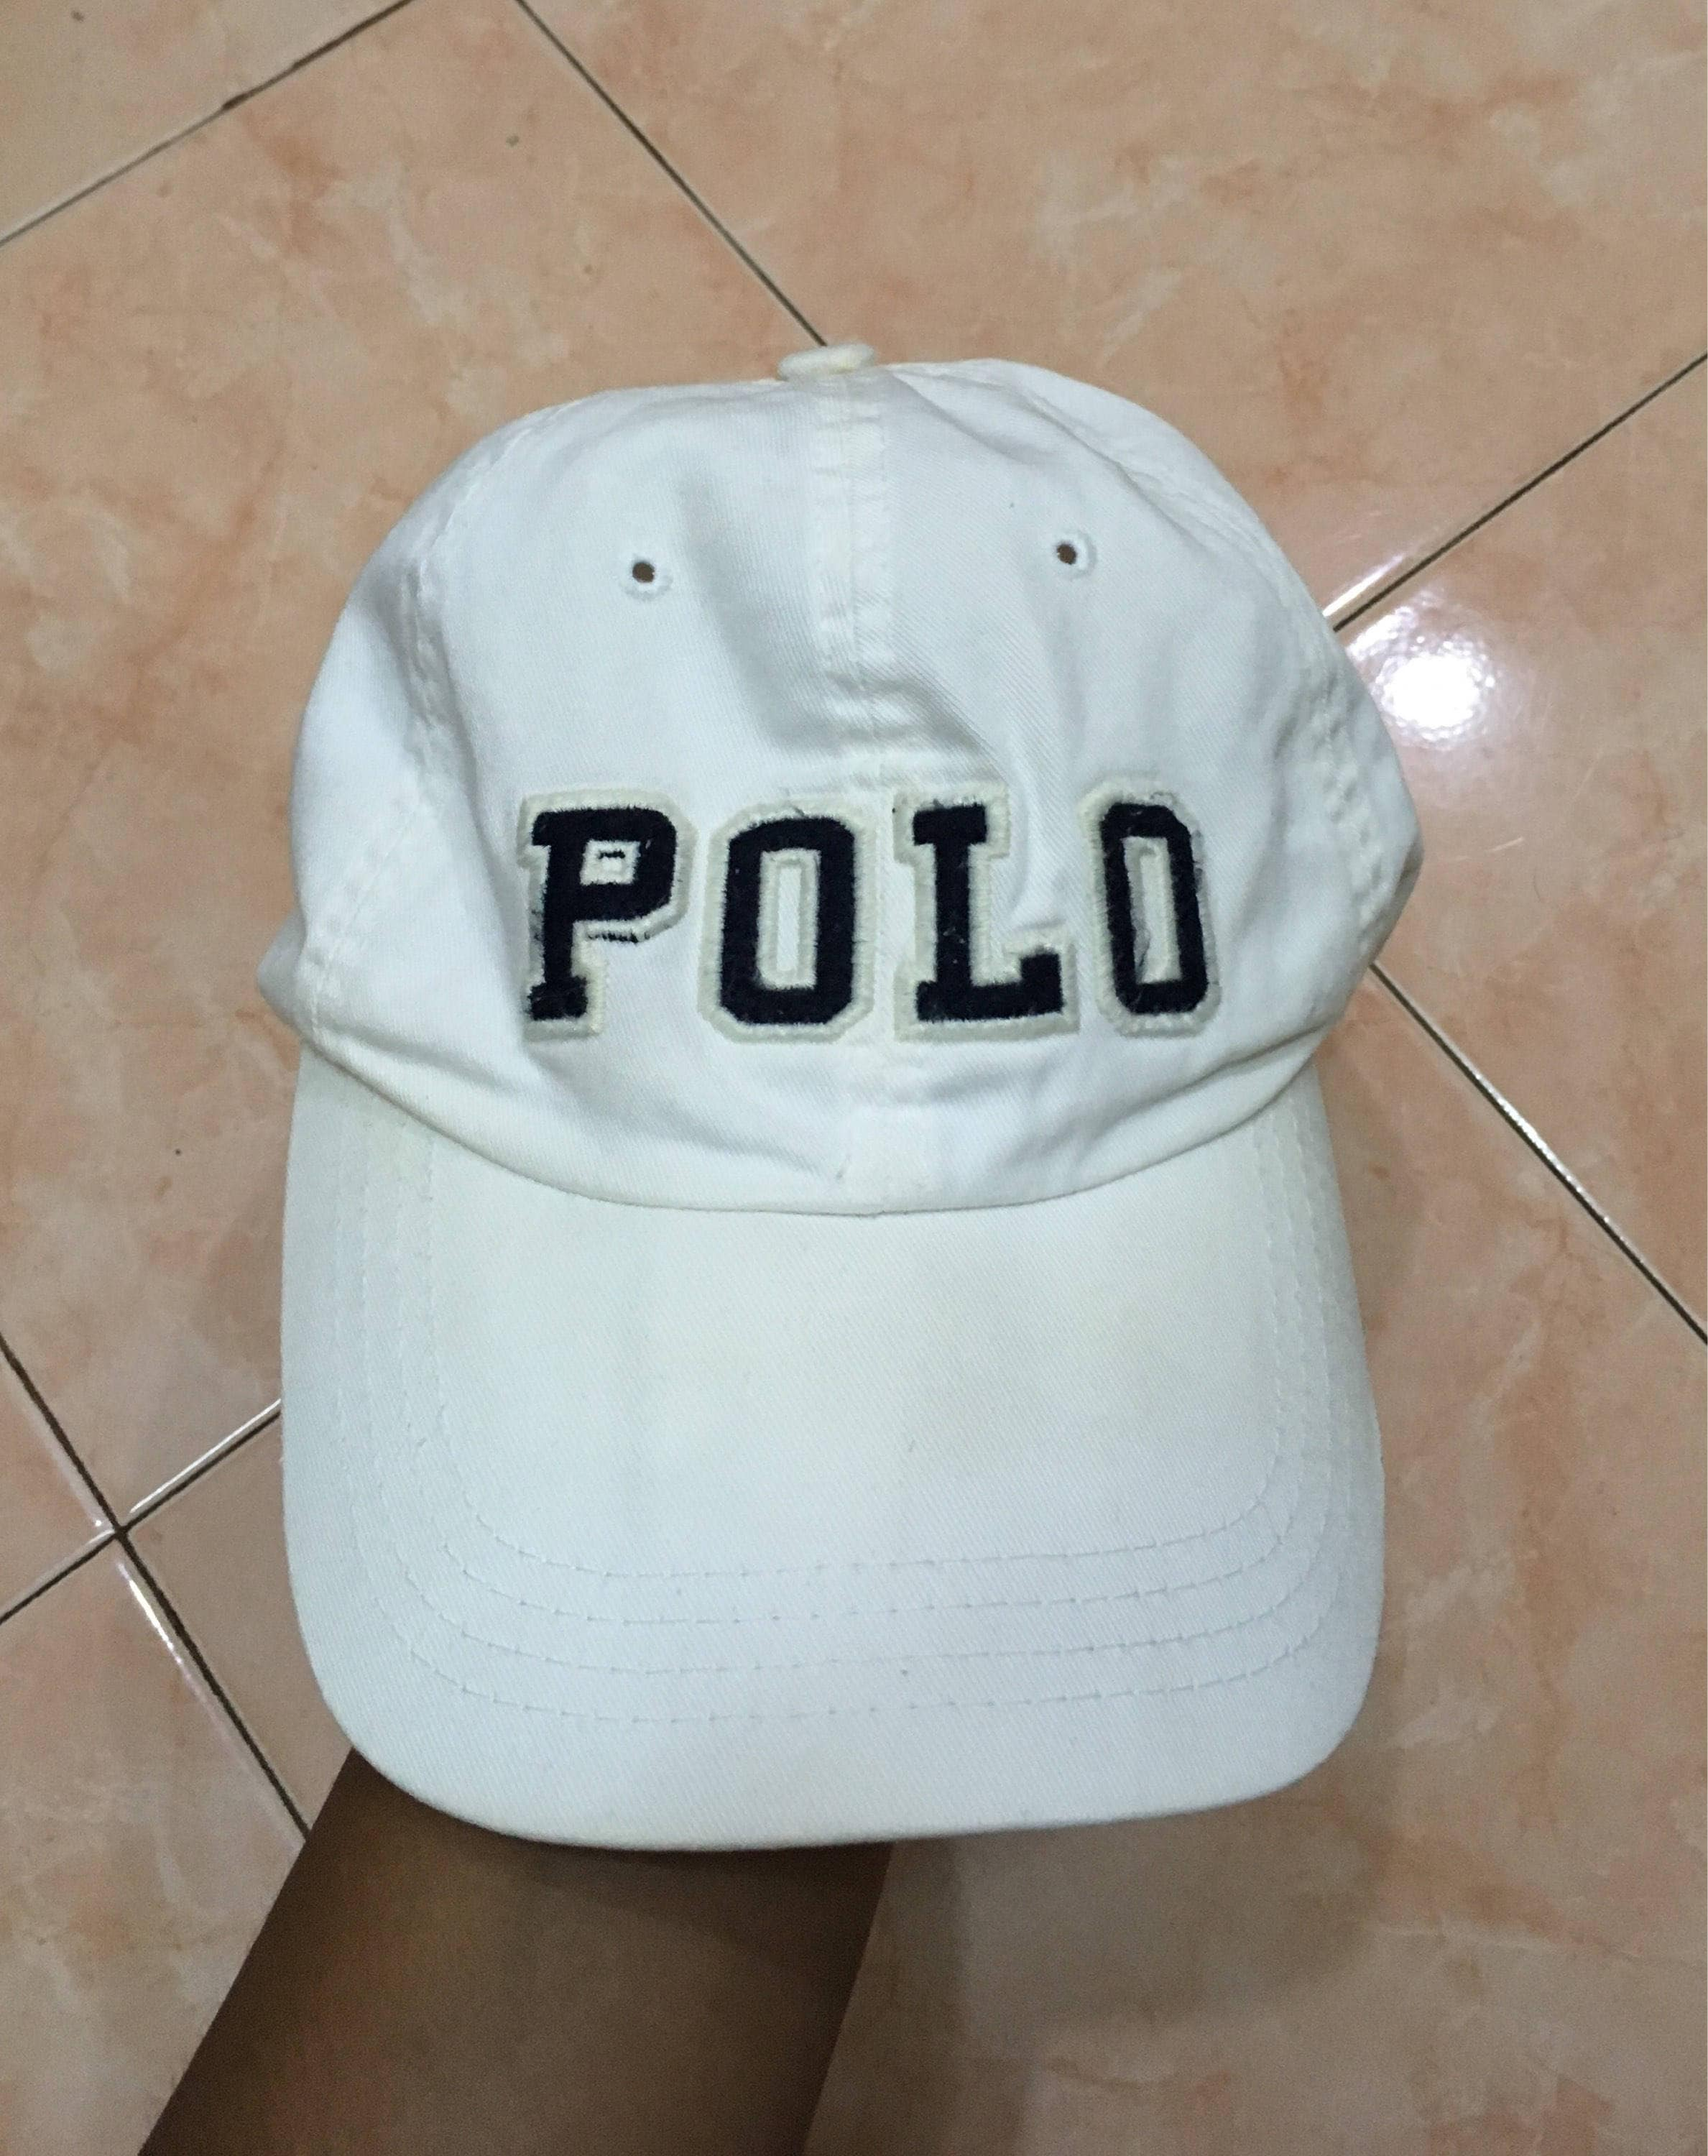 f000fc60716 Vintage 90s Polo by Ralph Lauren spell out big logo hat cap